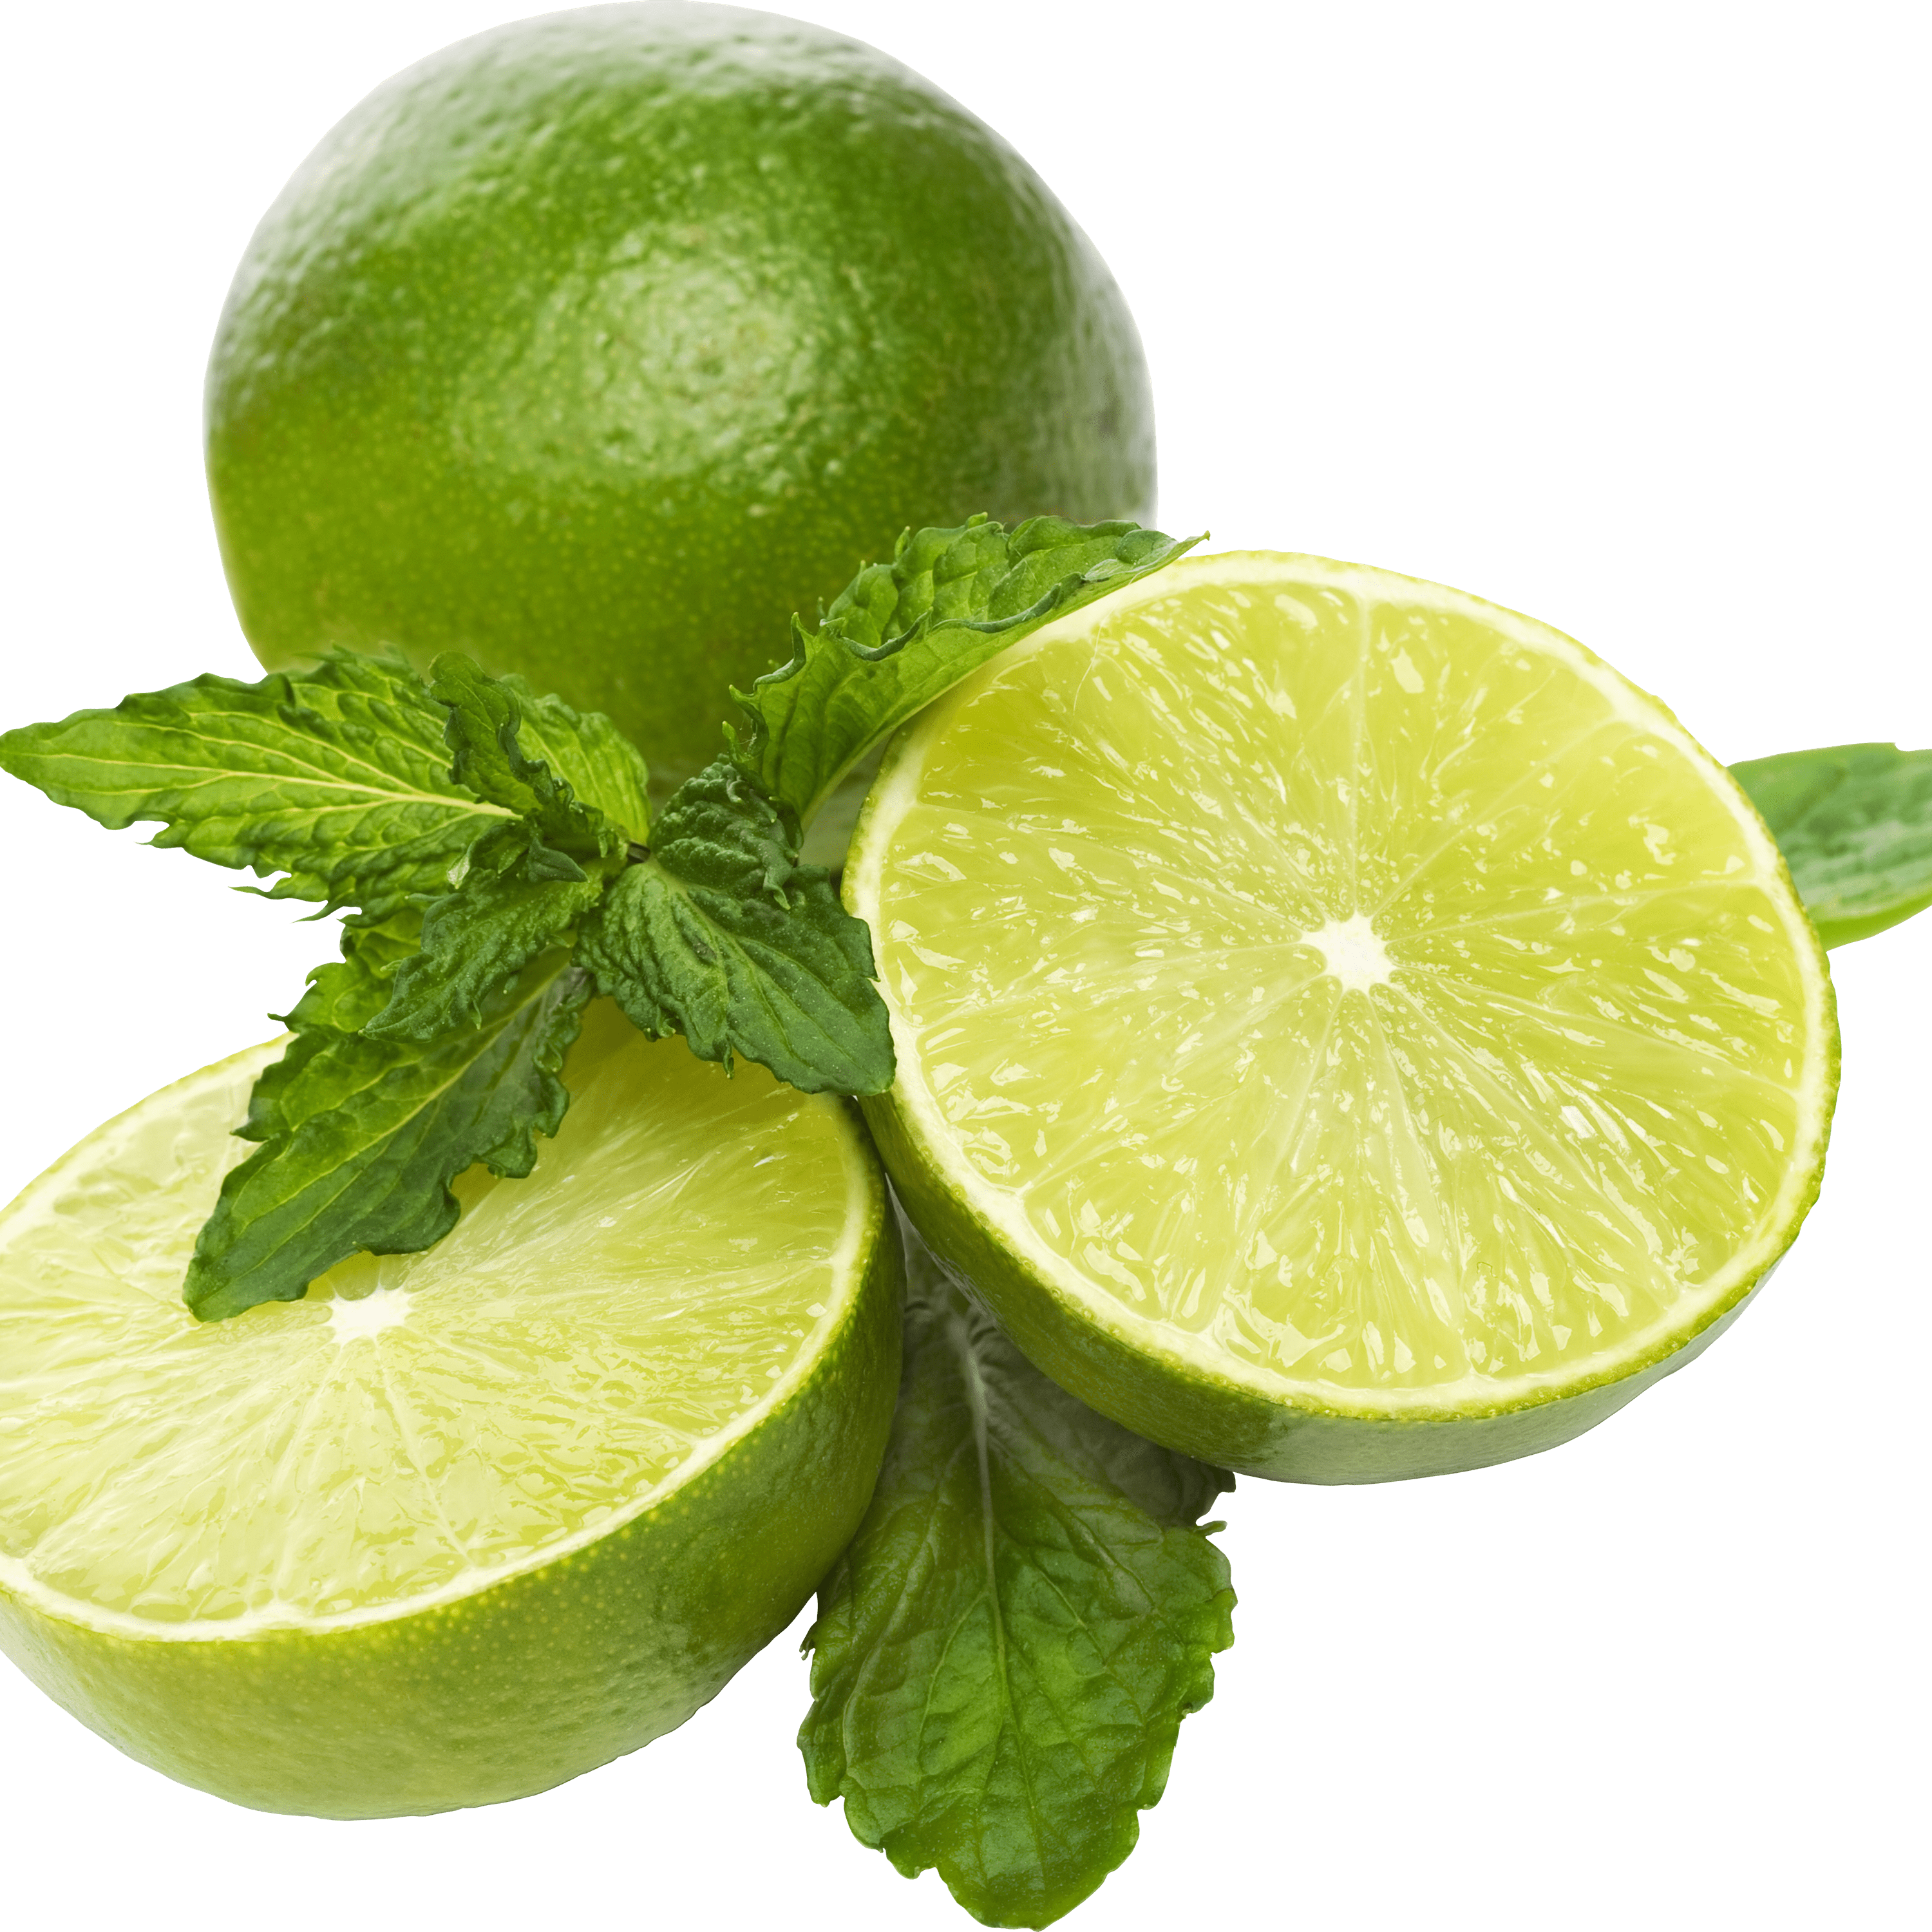 Lime Slice Png | www.pixshark.com - Images Galleries With ...